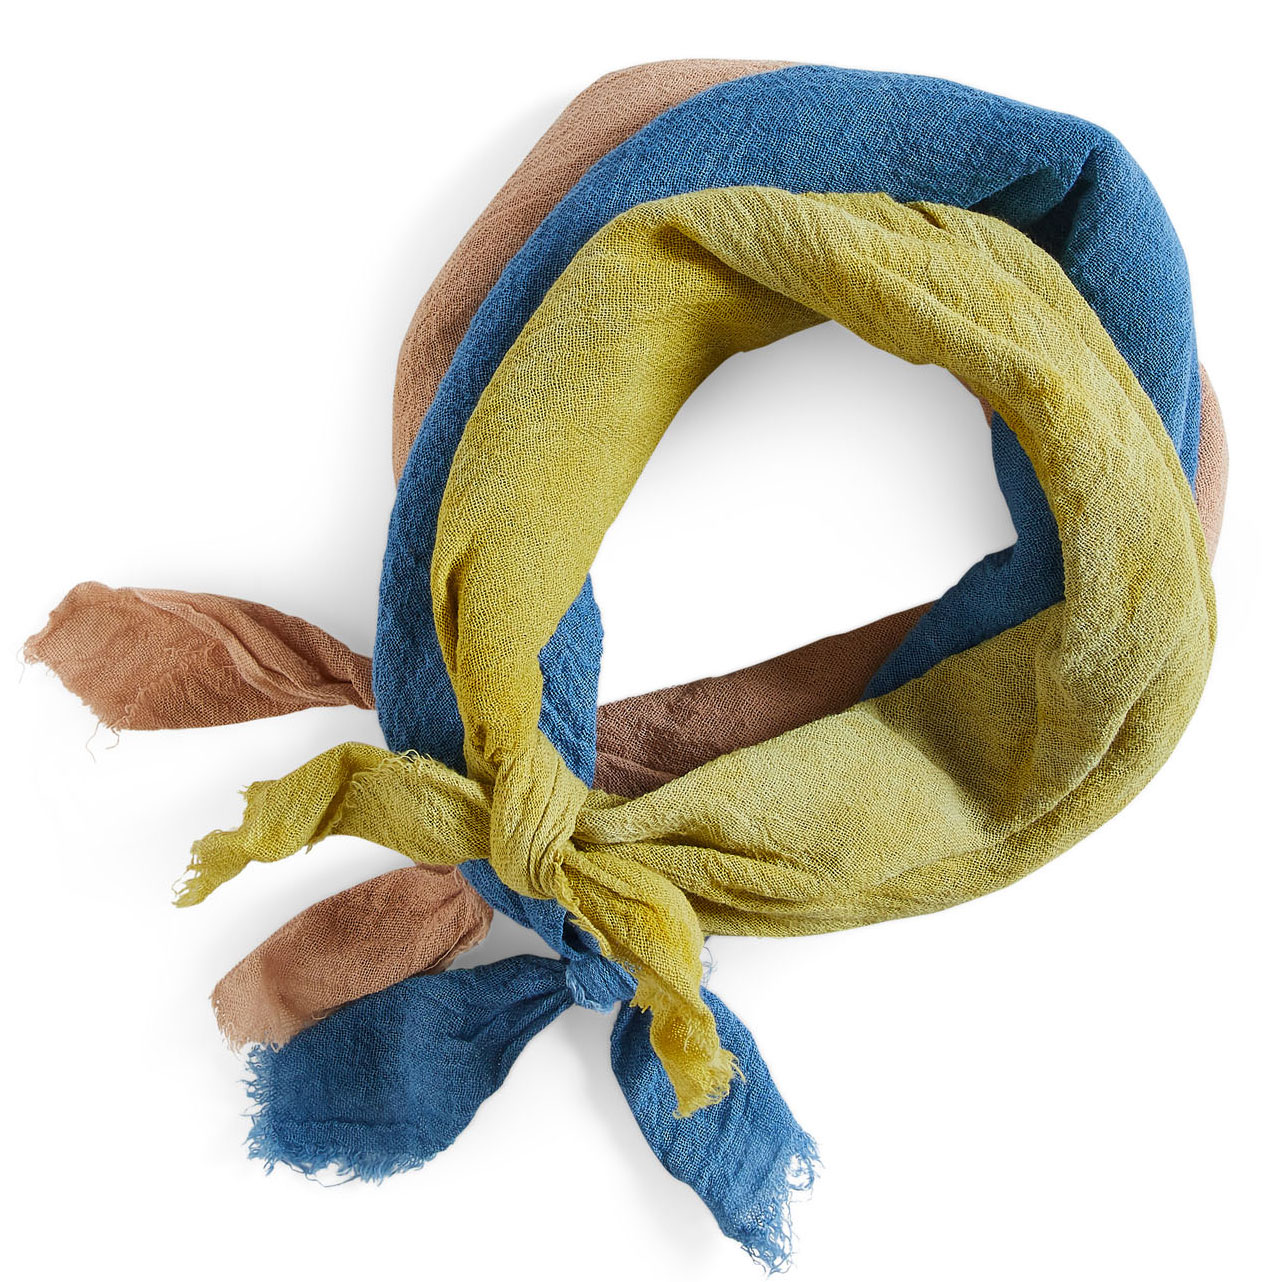 Scrunchies made by Rosemarine Textiles